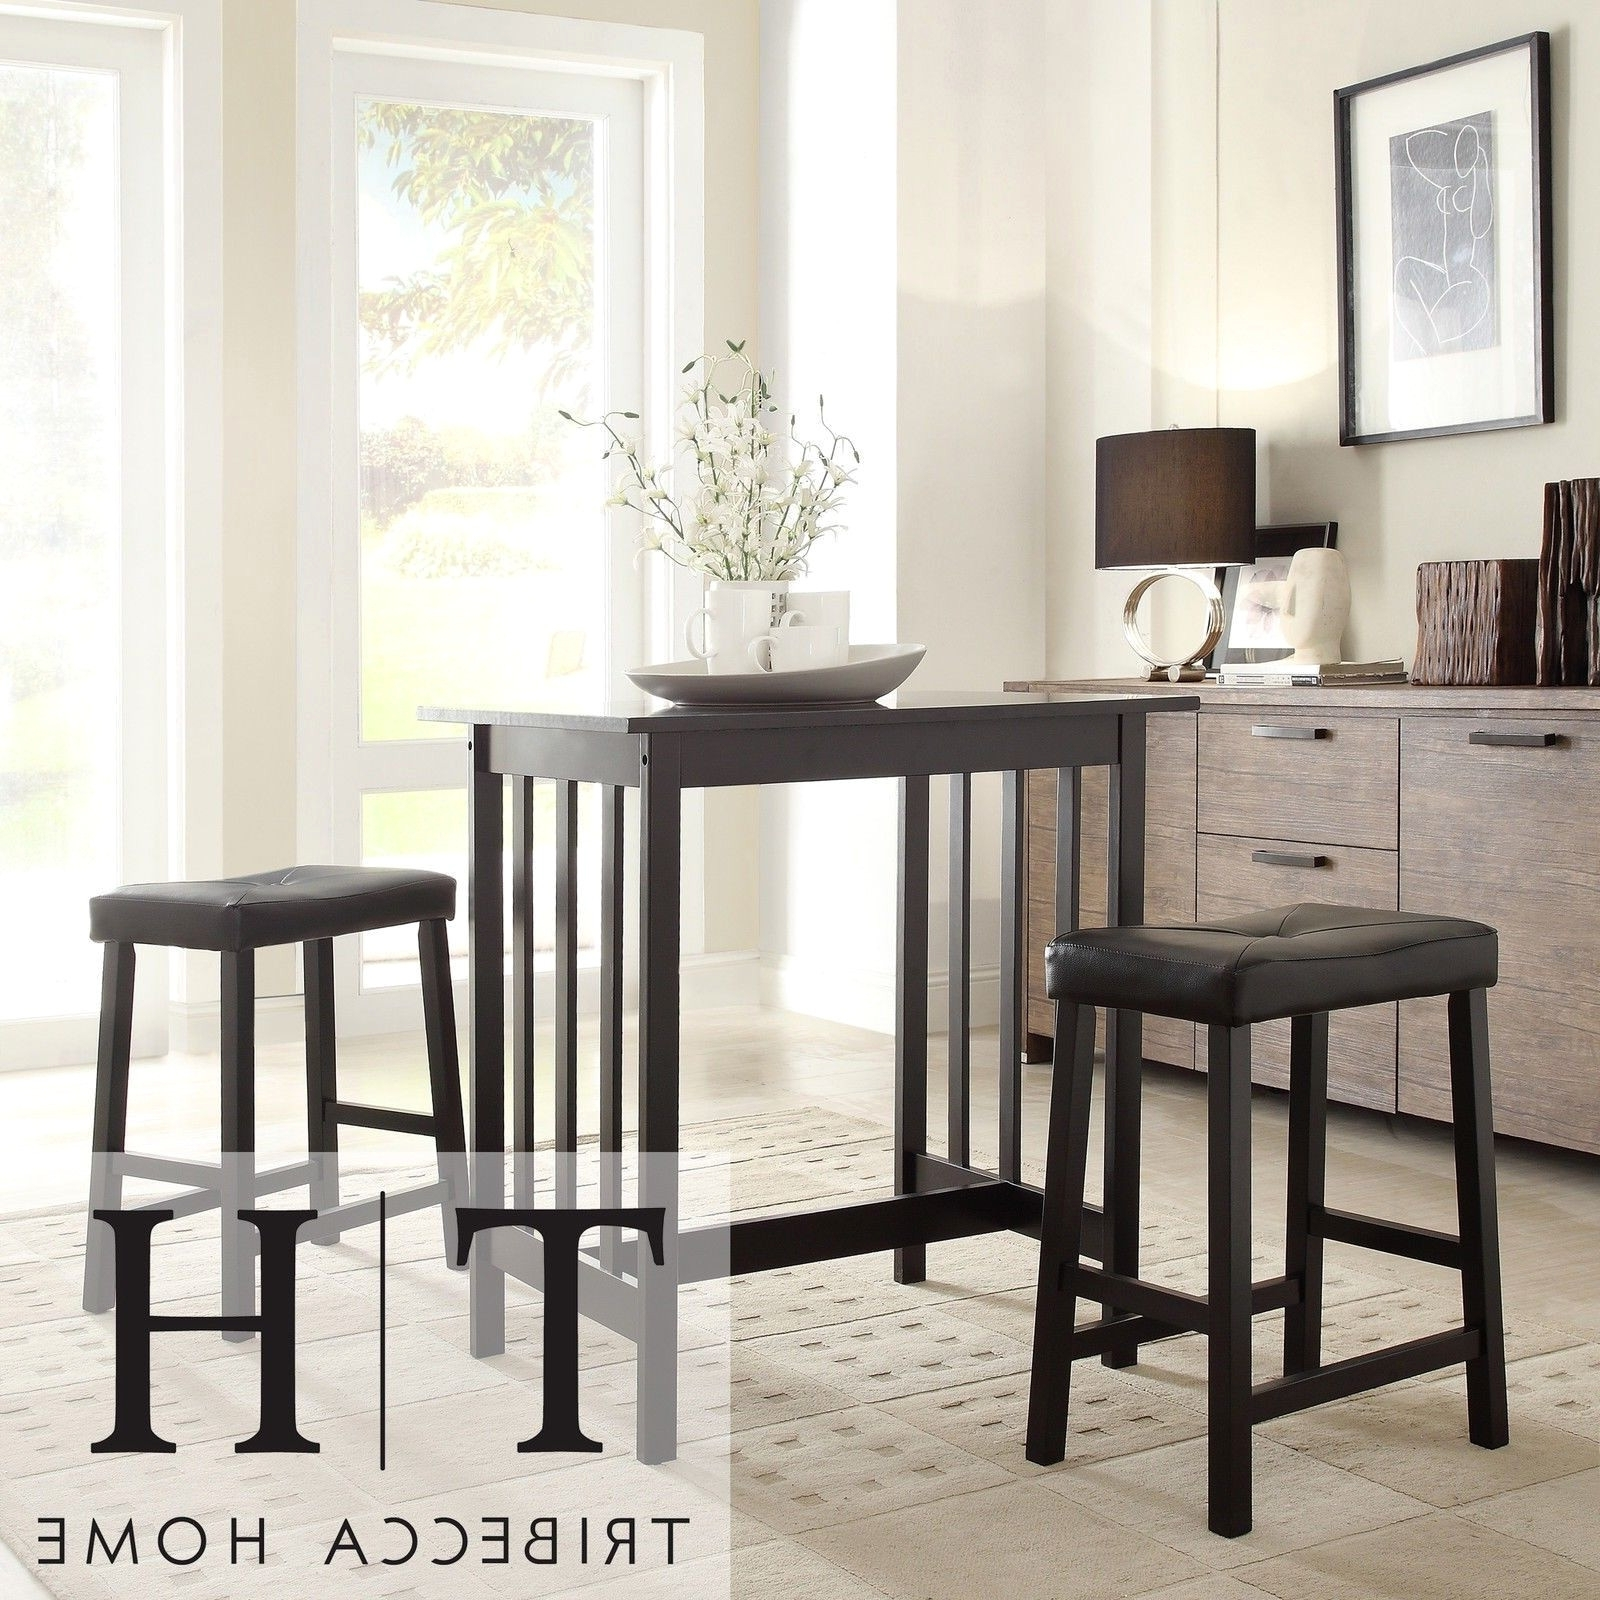 Luxury Small Breakfast Table Small Rustic Wood Dining Tables Rustic Throughout Best And Newest Dining Tables Lighting (View 19 of 25)